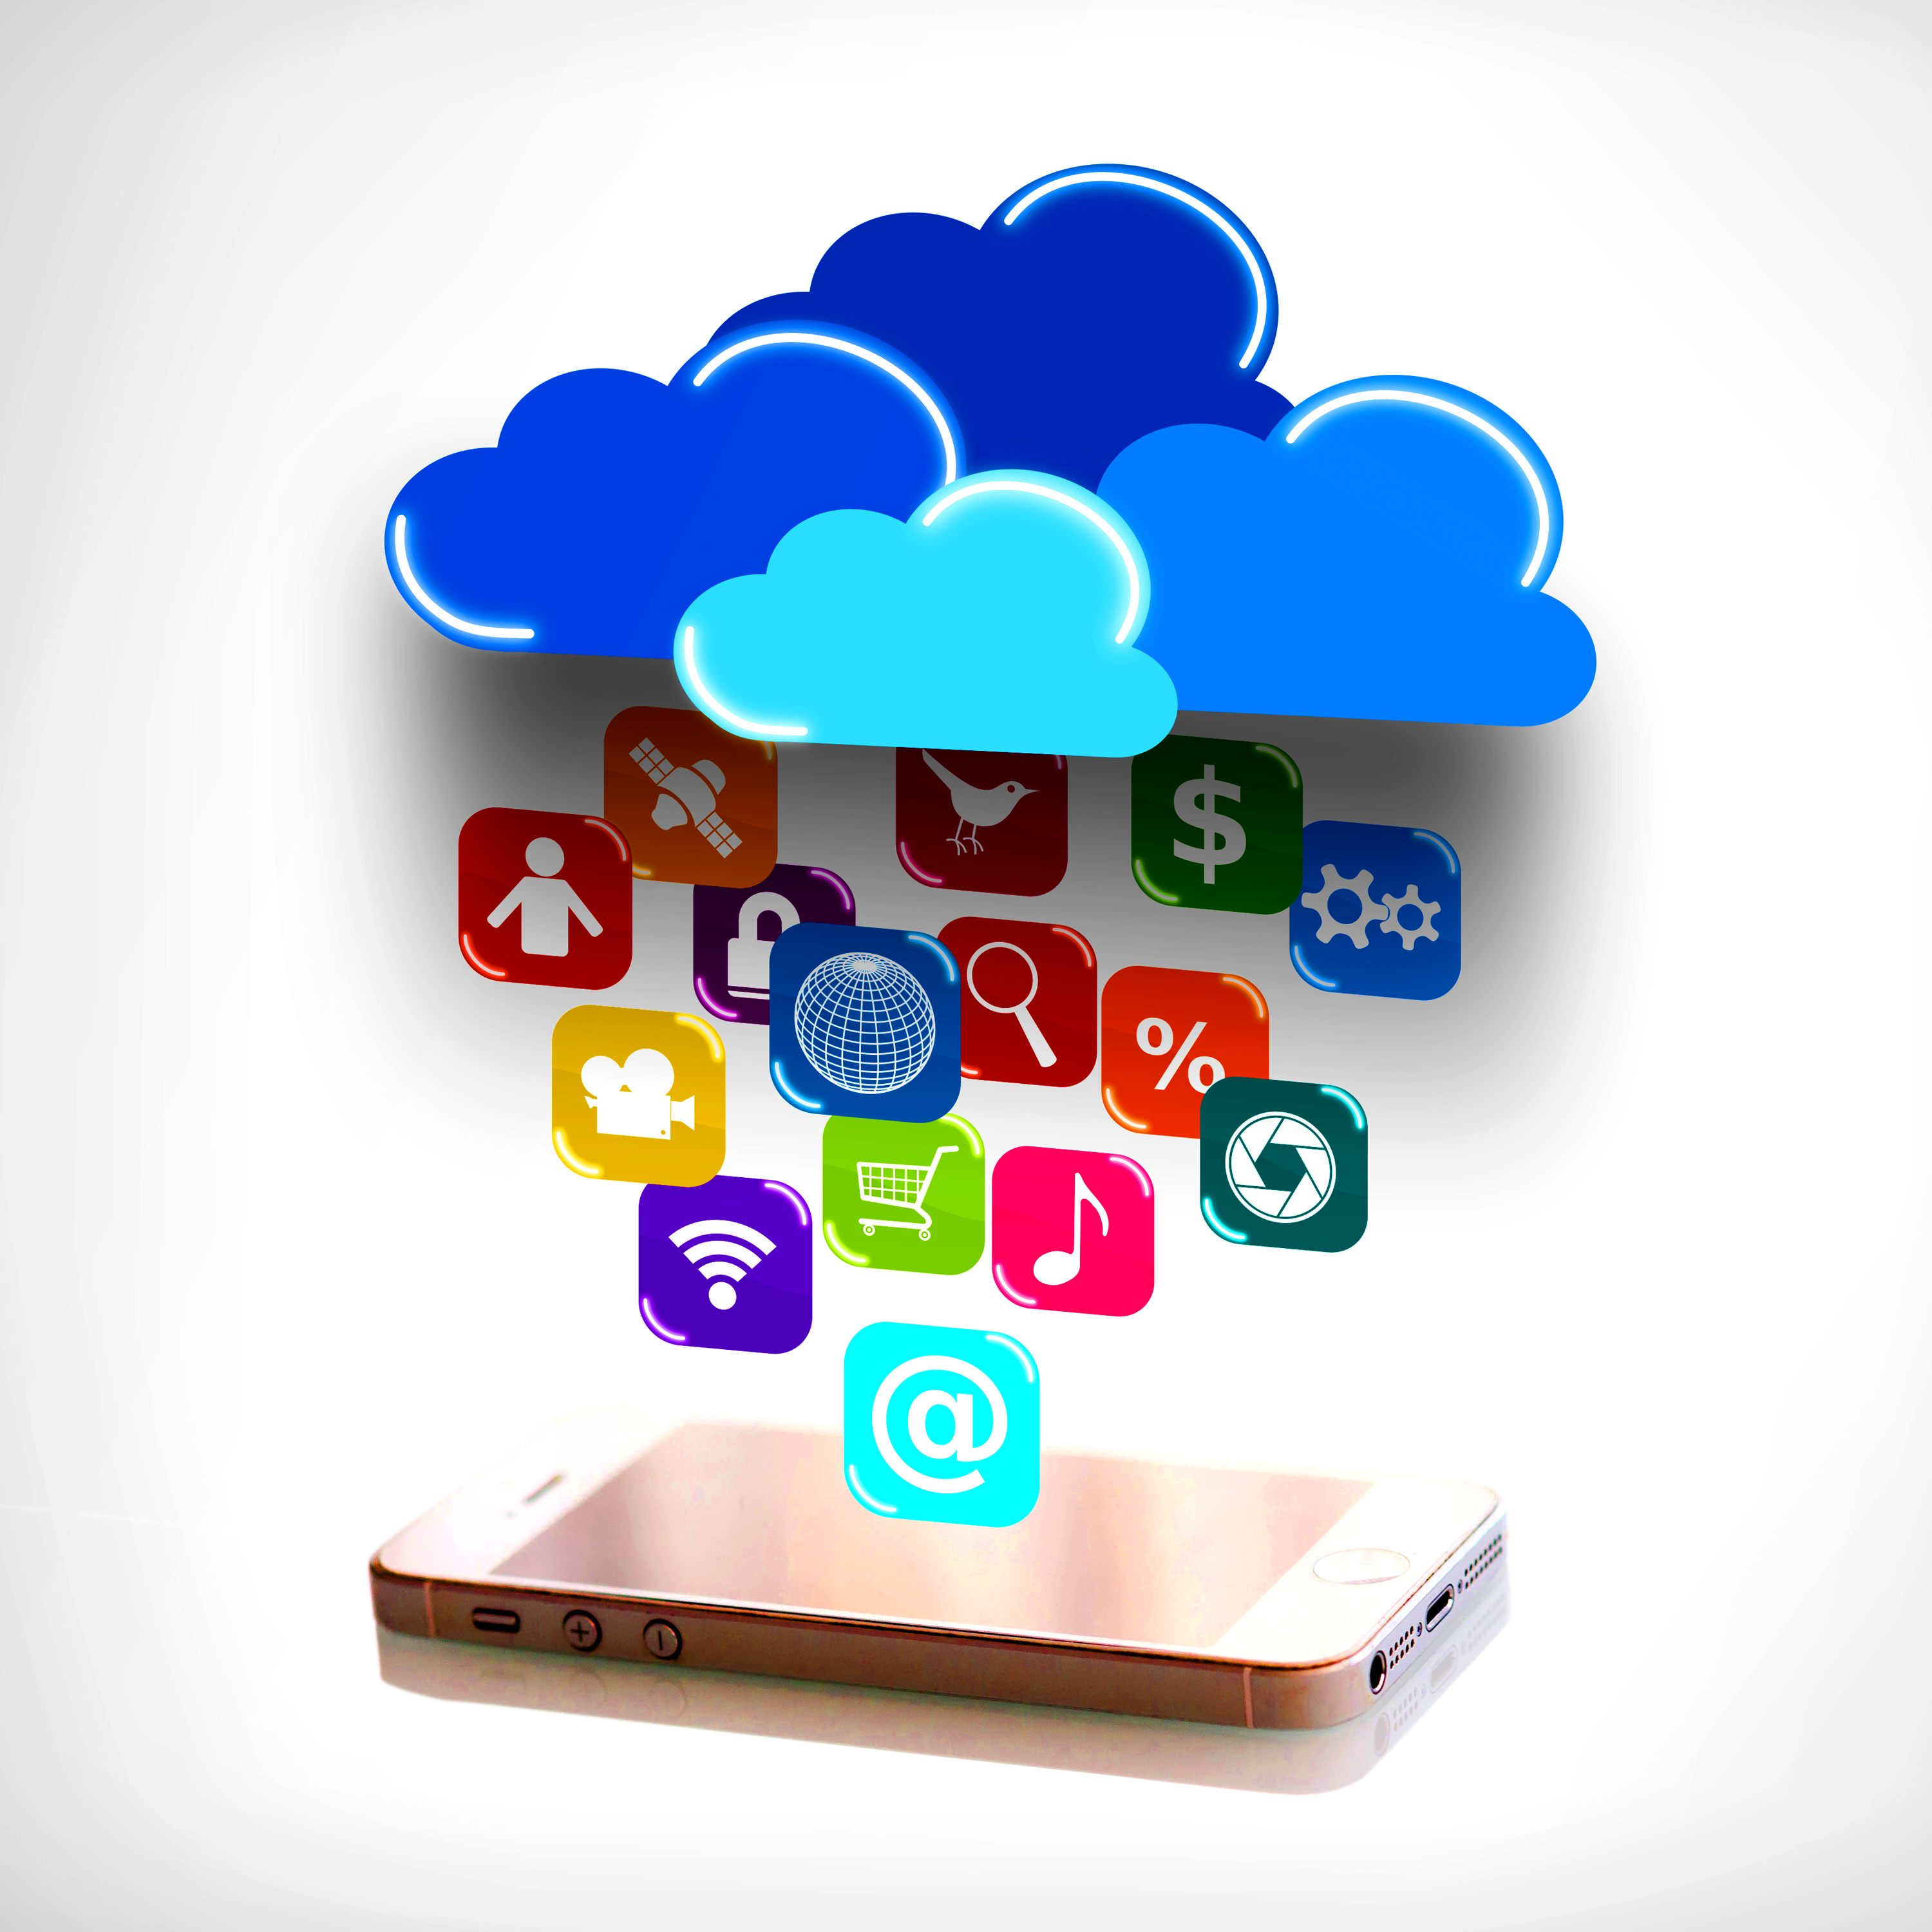 Mobile Cloud Computing and Why You Should Adopt It! - Image 1